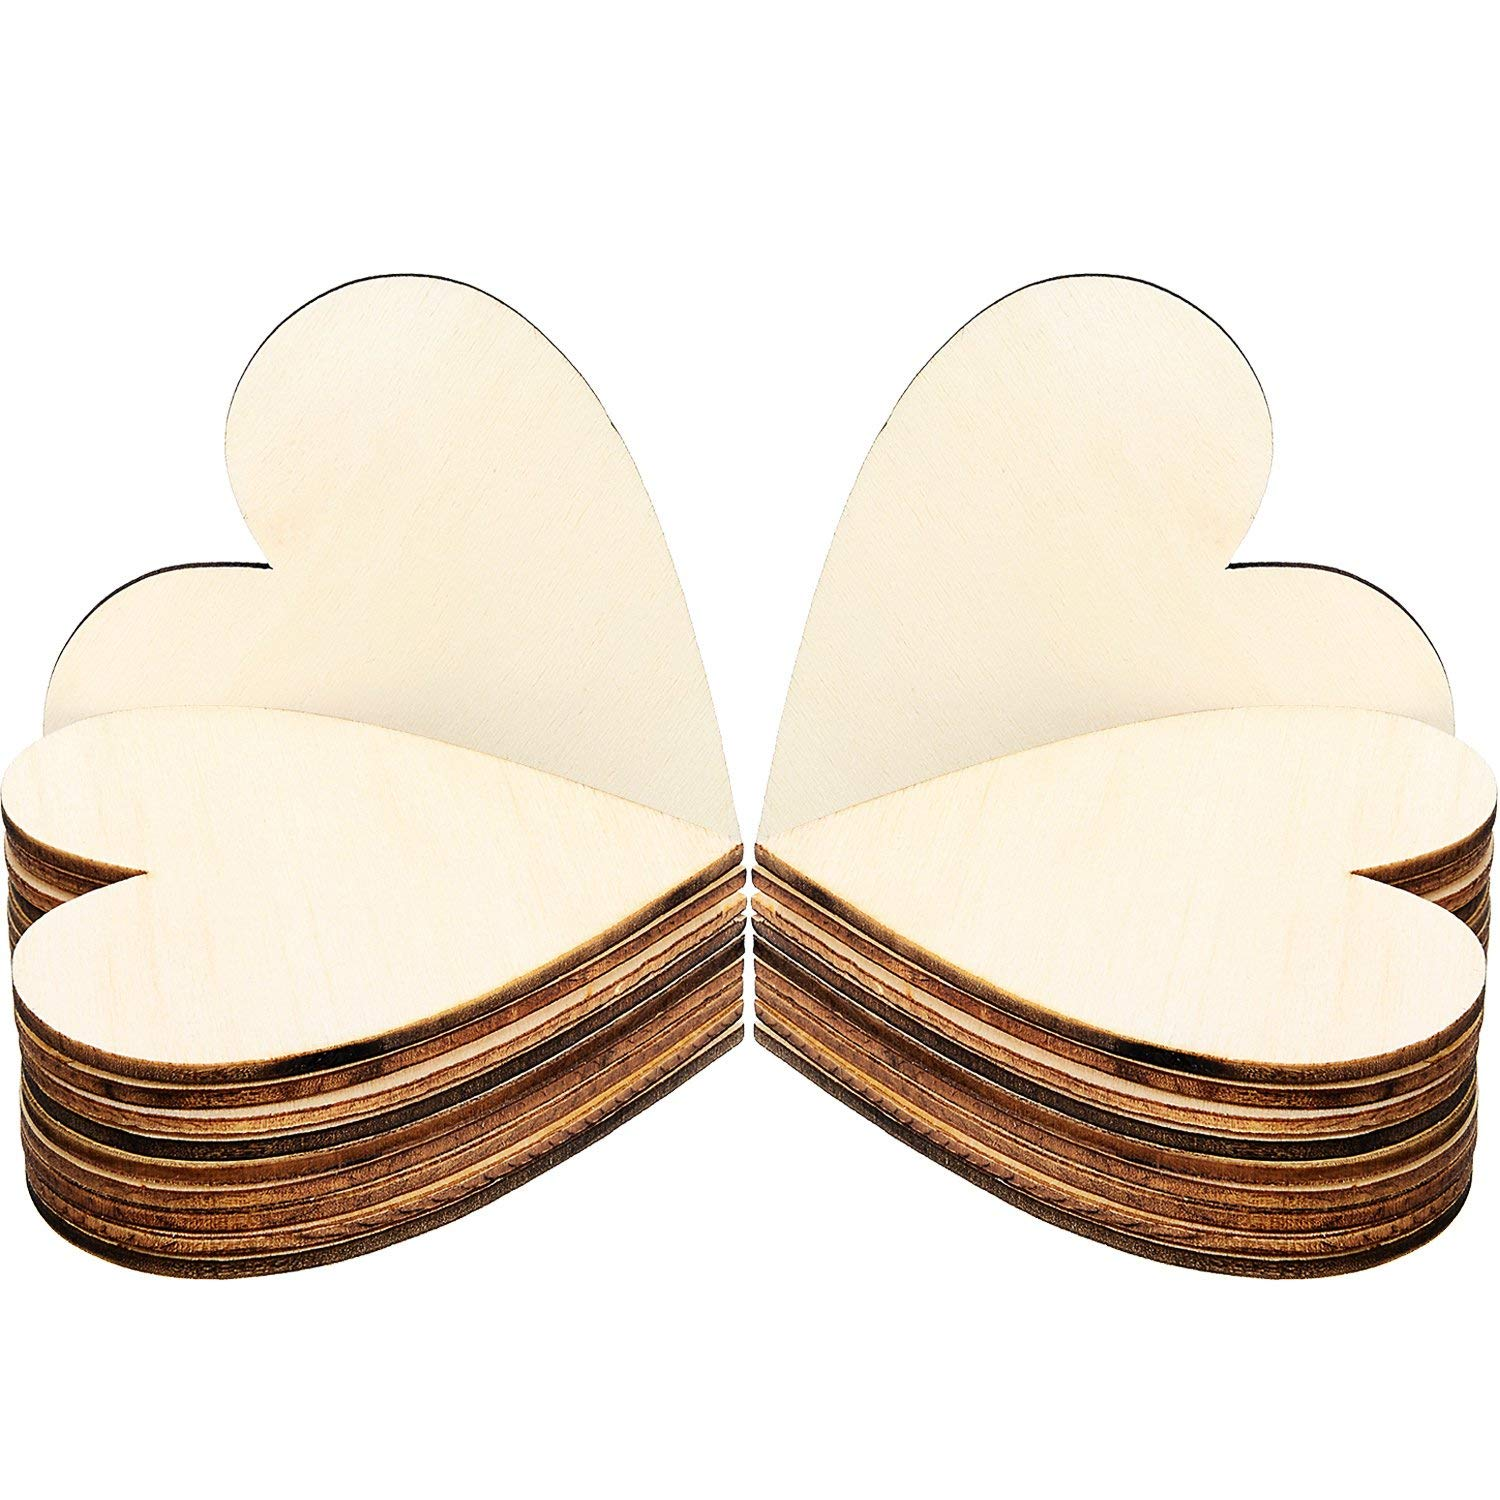 Frienda 3.15 Inch Wood Hearts Slices Wooden Discs Heart Shaped Embellishment for Wedding, Decor Arts Crafts DIY, 50 Pieces